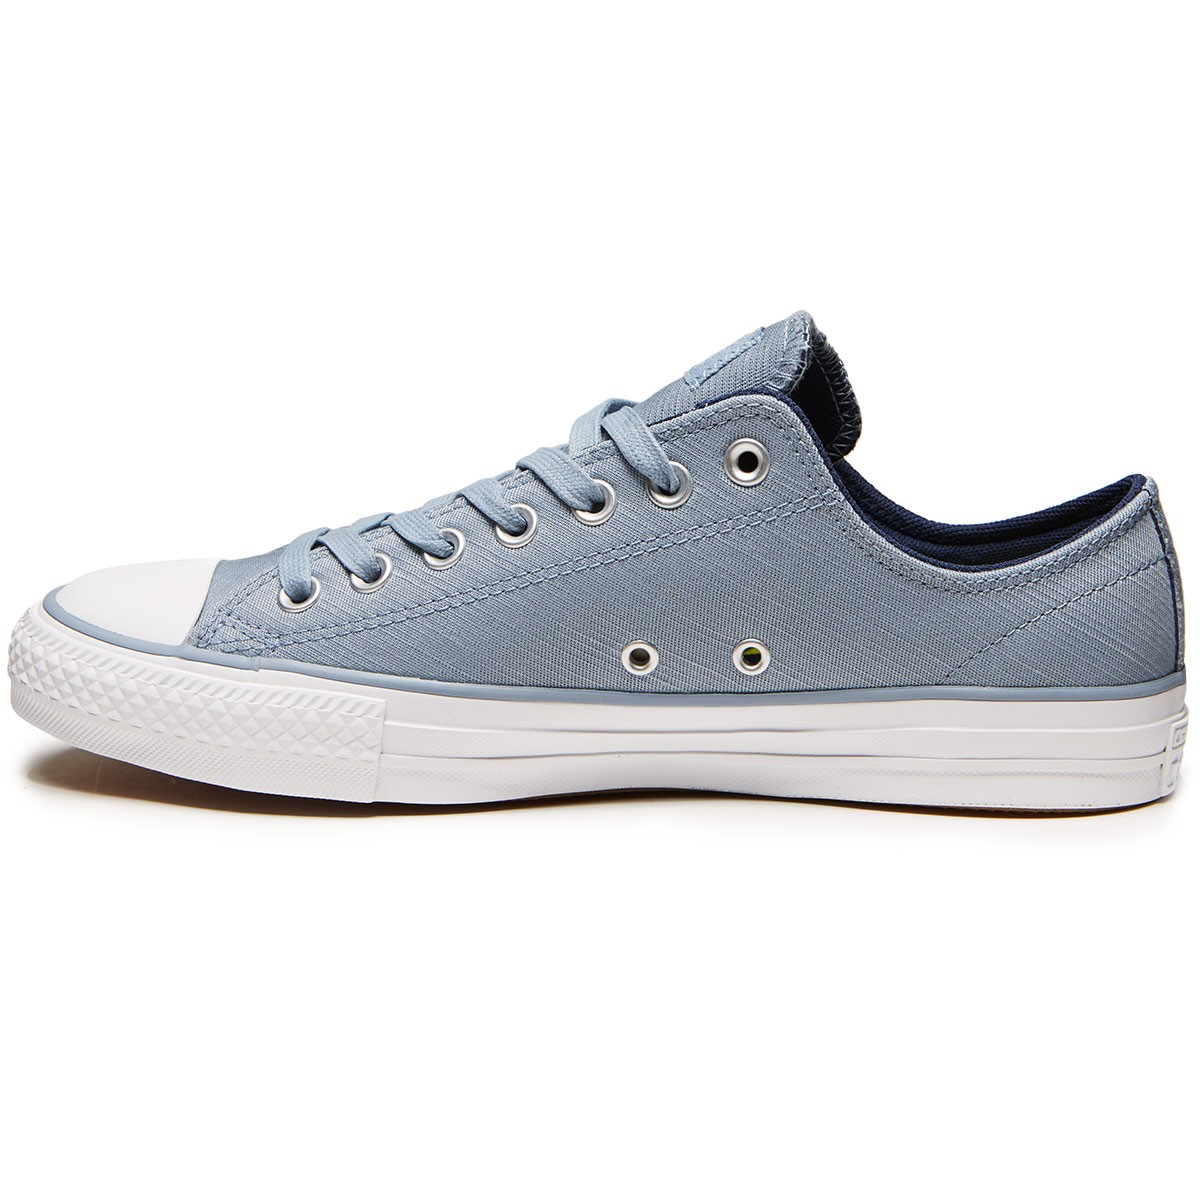 ee9298eb56f2 Converse CTAS Pro Suede Backed Twill Shoes - Blue Slate Midnight Navy - 4.0